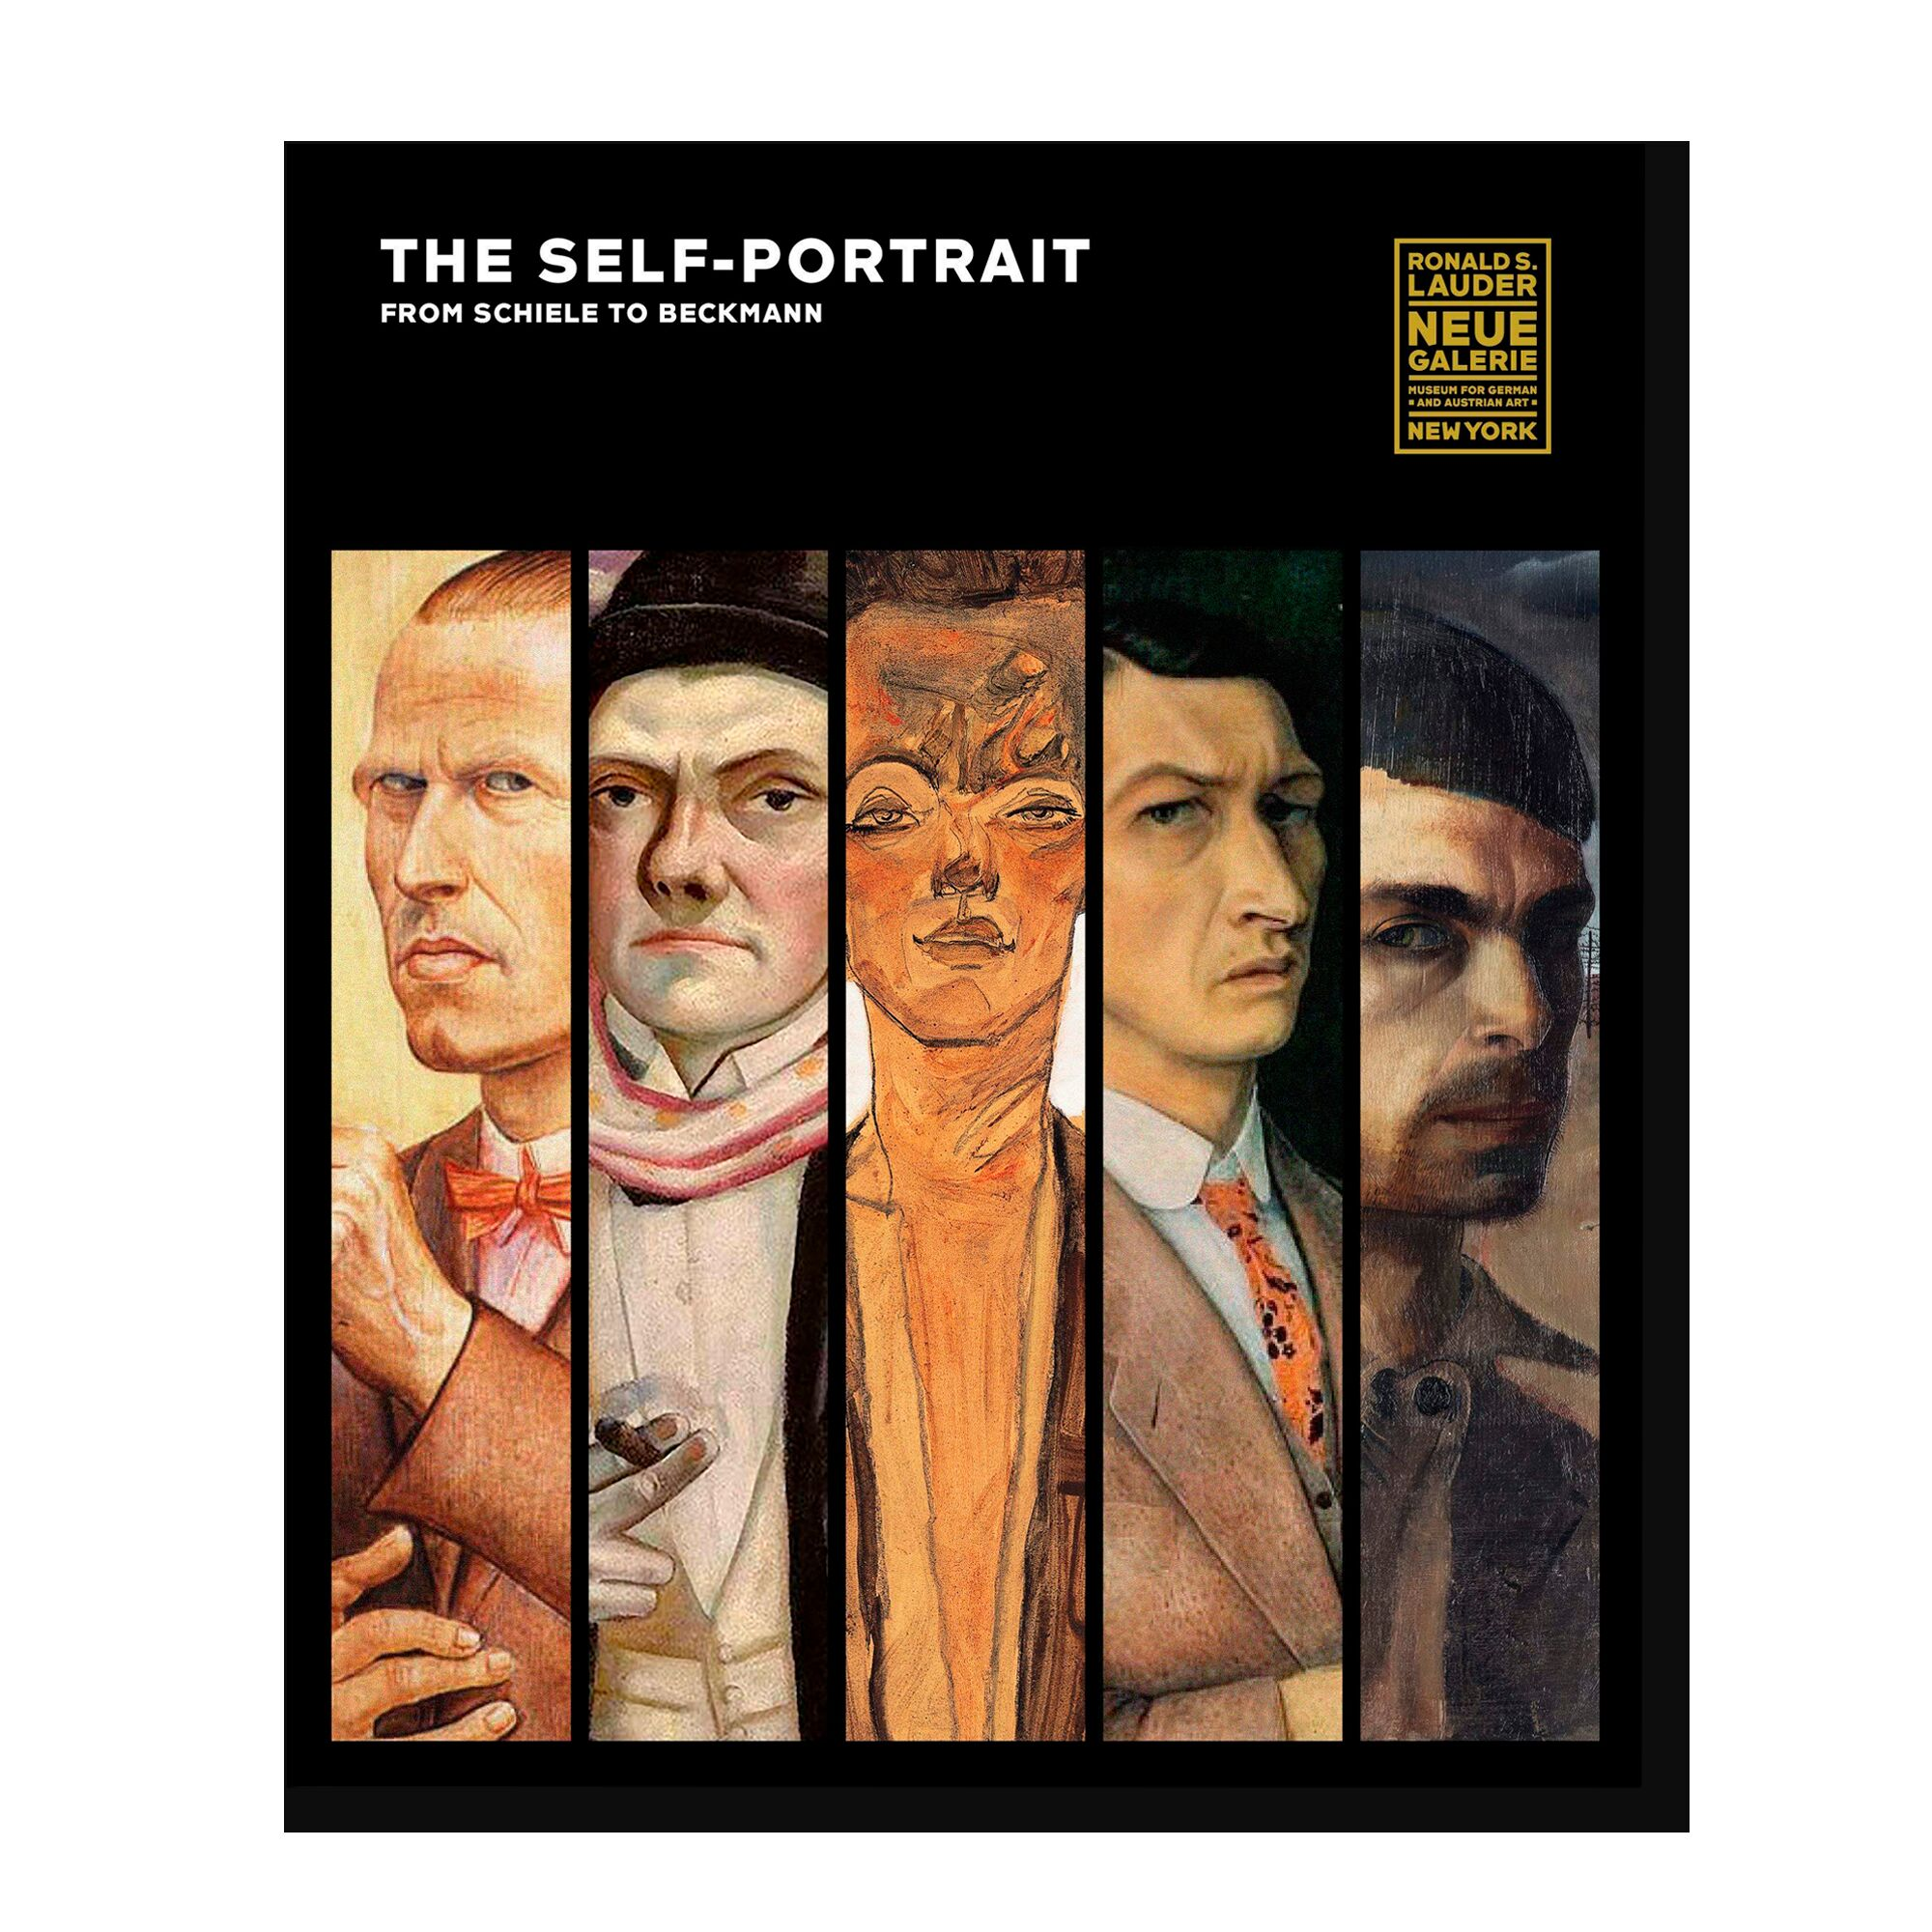 The Self-Portrait, from Schiele to Beckmann